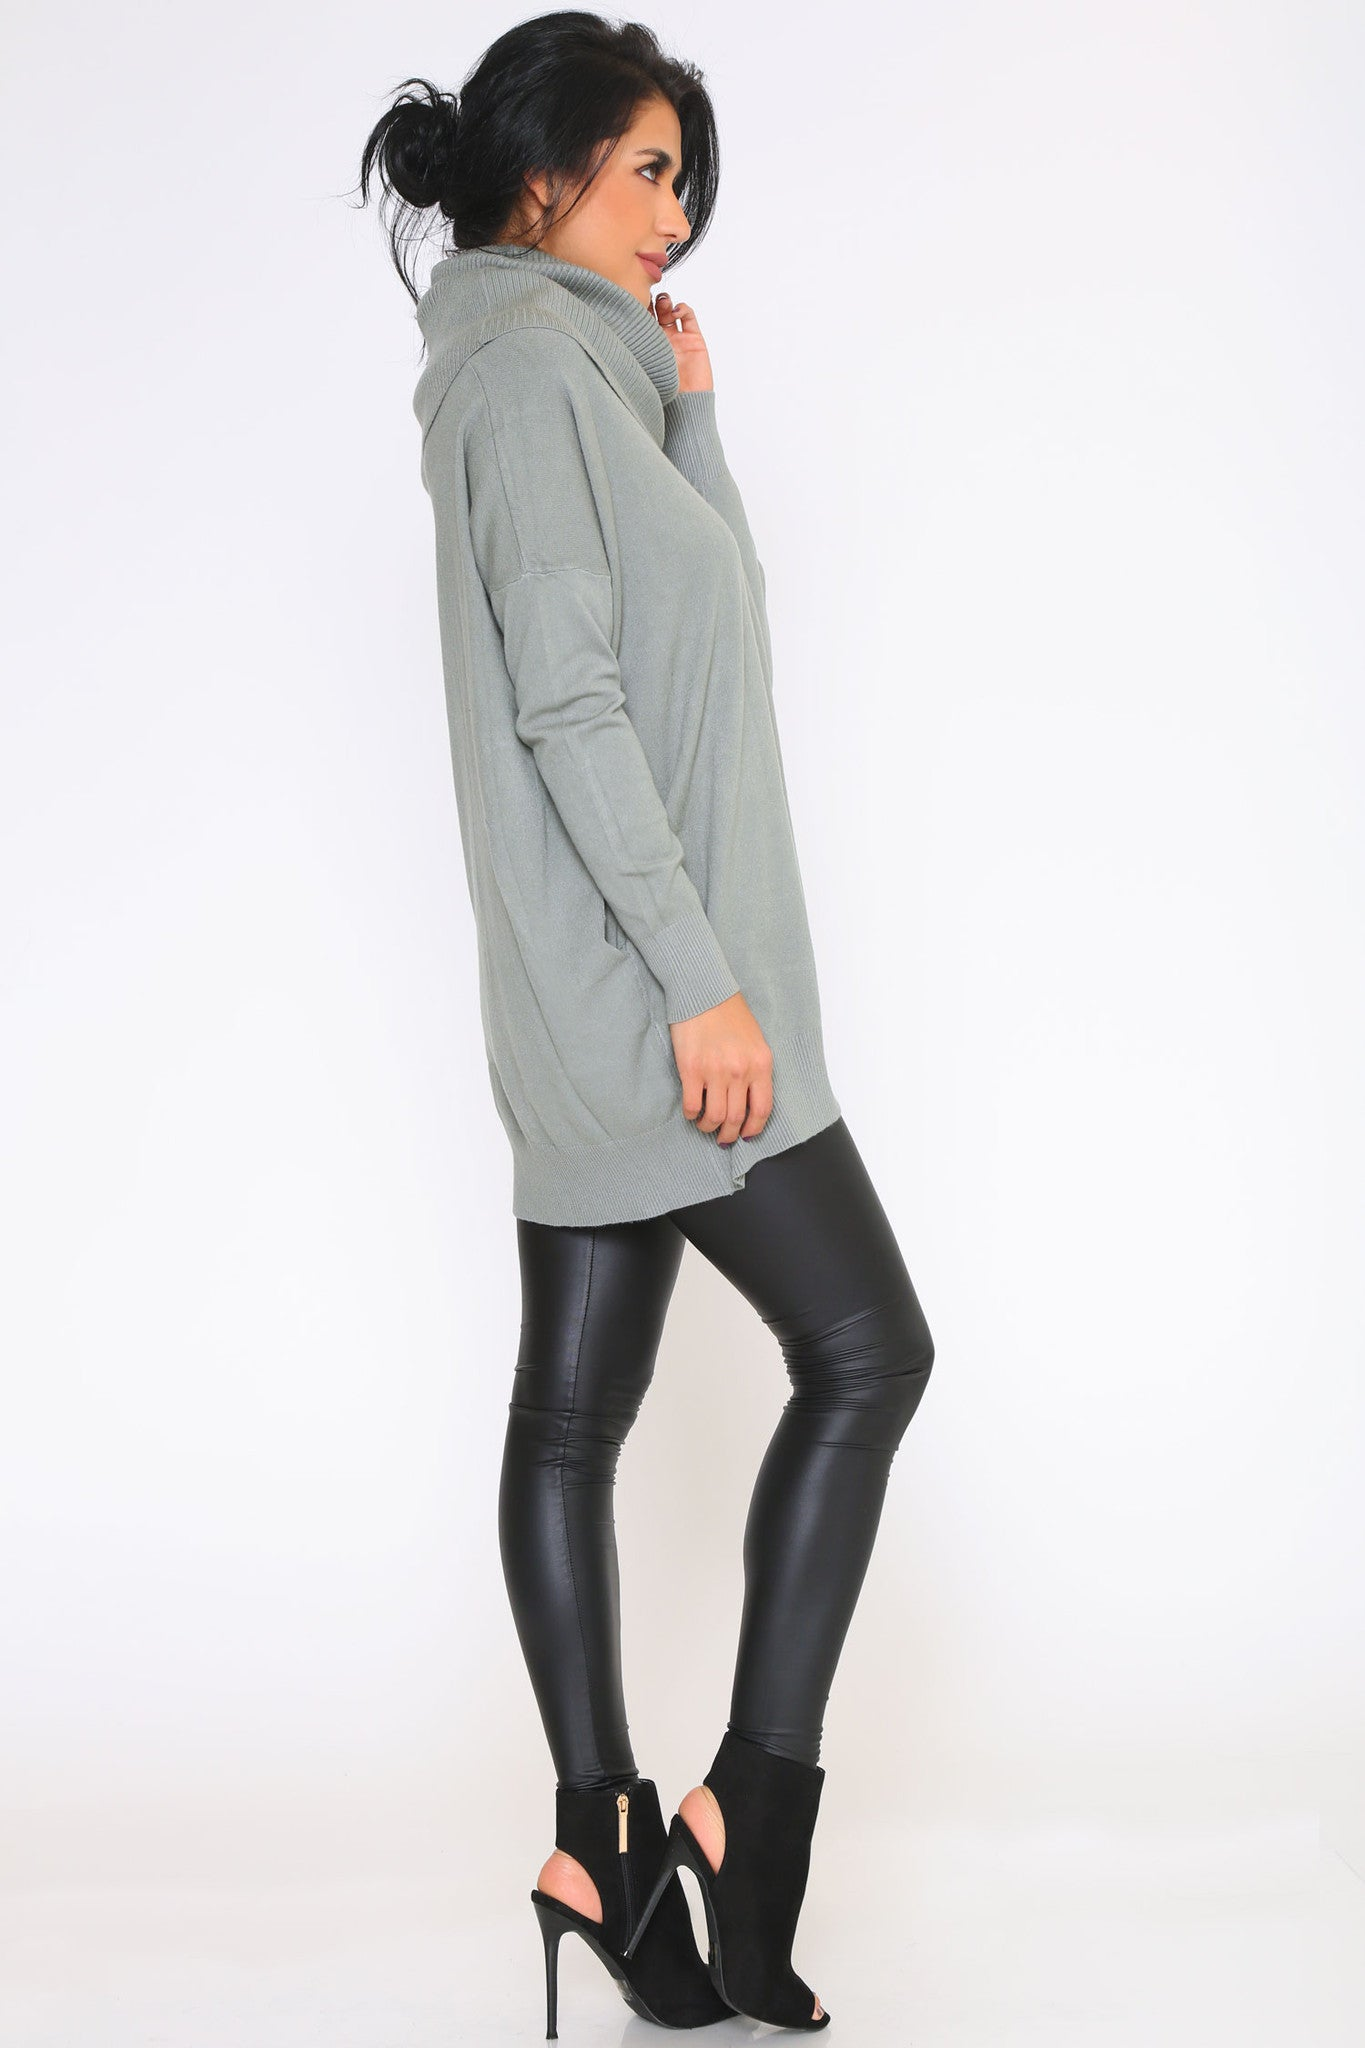 KENDRA SWEATER DRESS - Glam Envy - 2